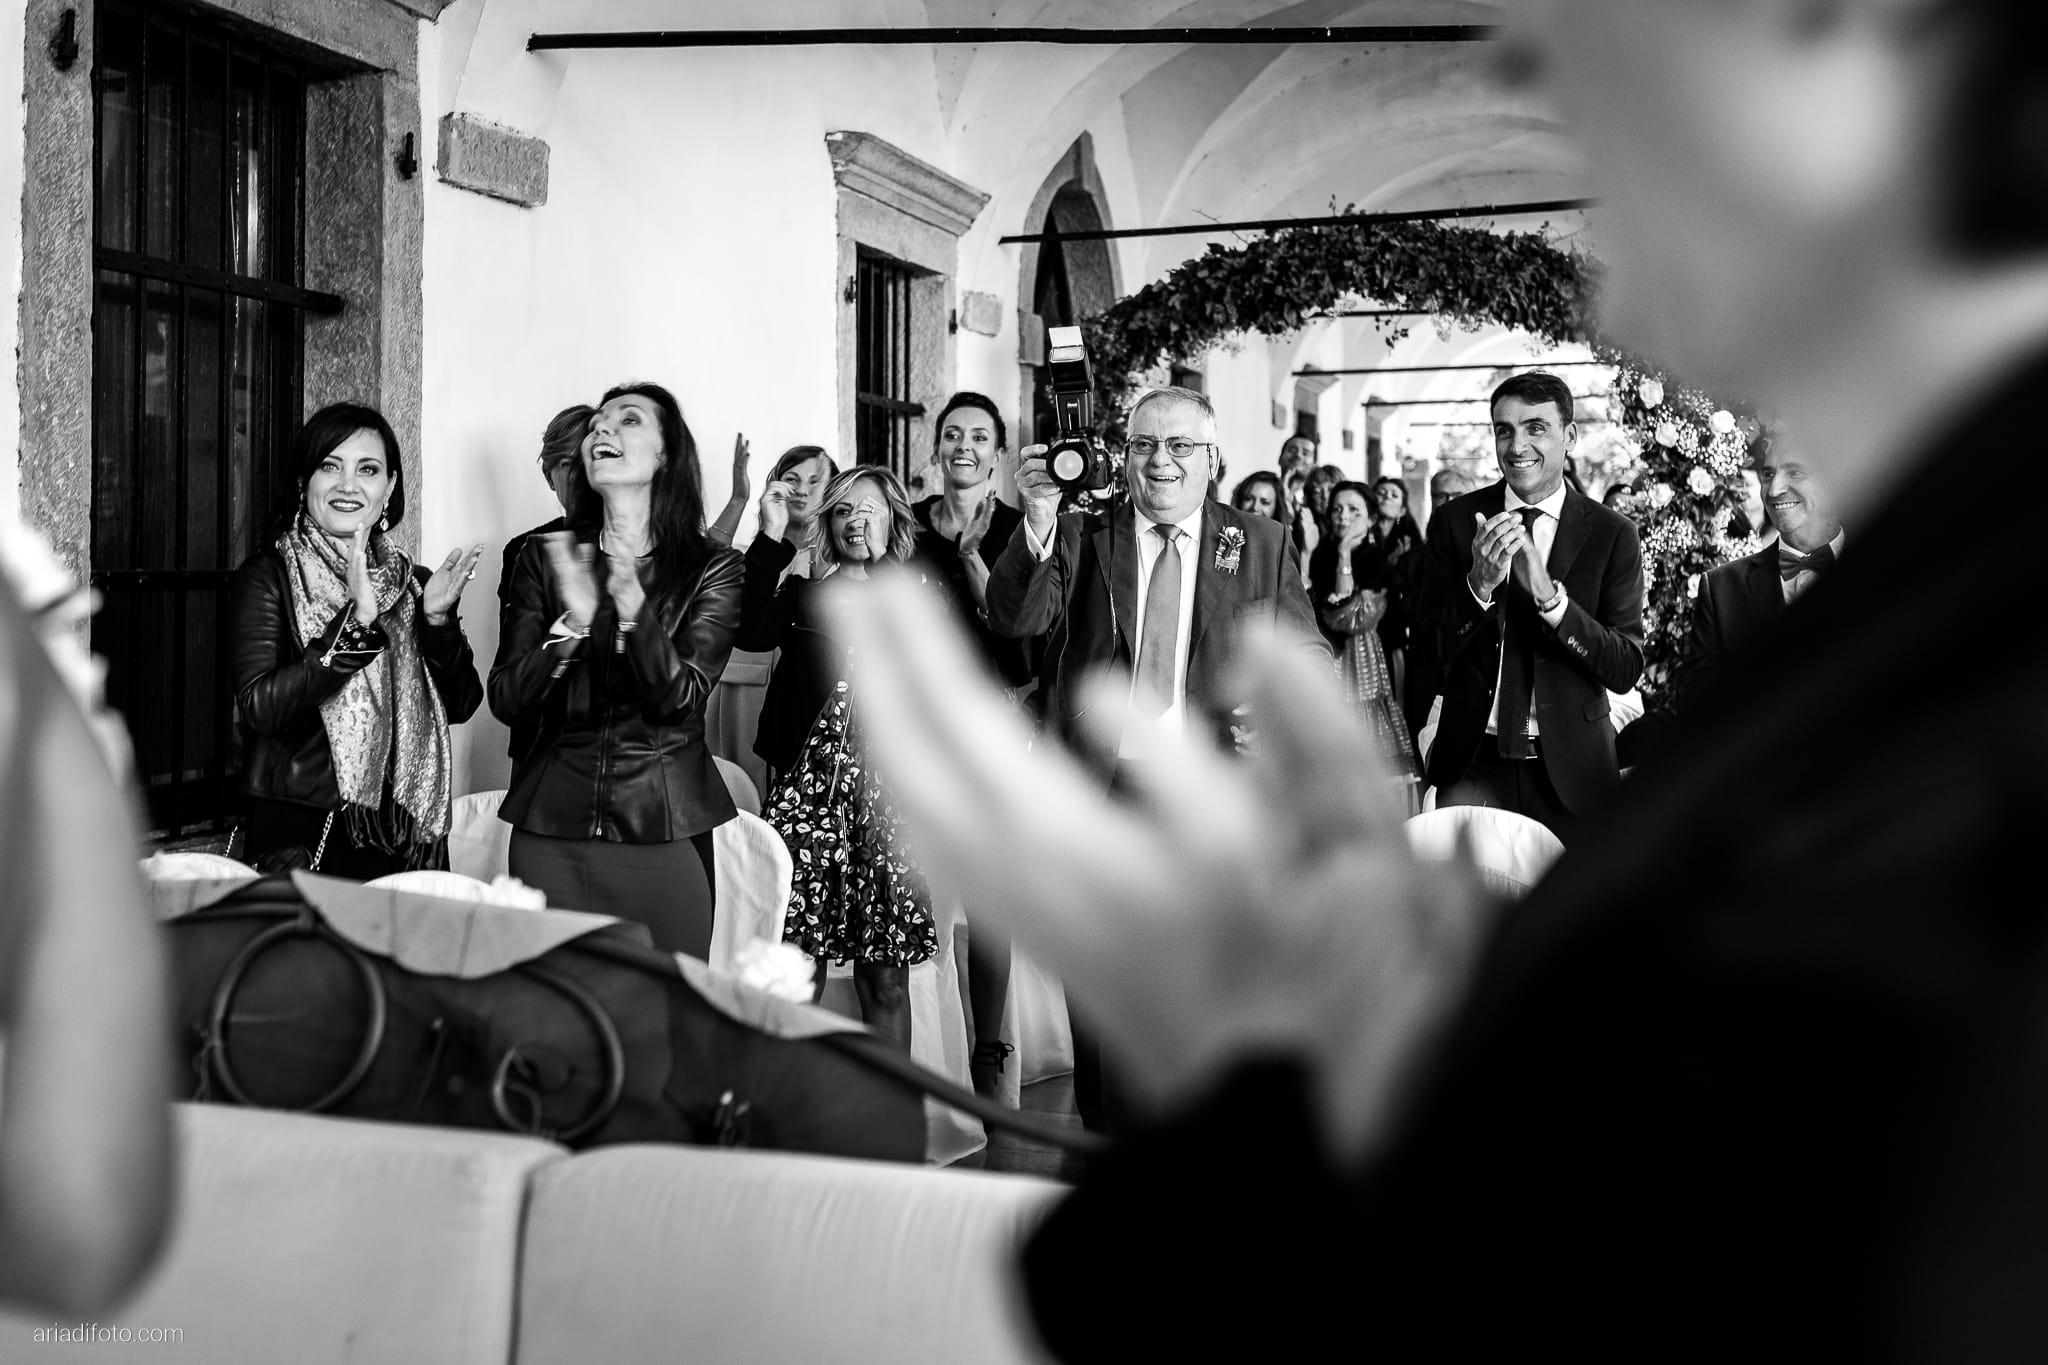 Francesca Davide Matrimonio Destination Wedding Castello Zemono Valle Vipacco Slovenia cerimonia civile